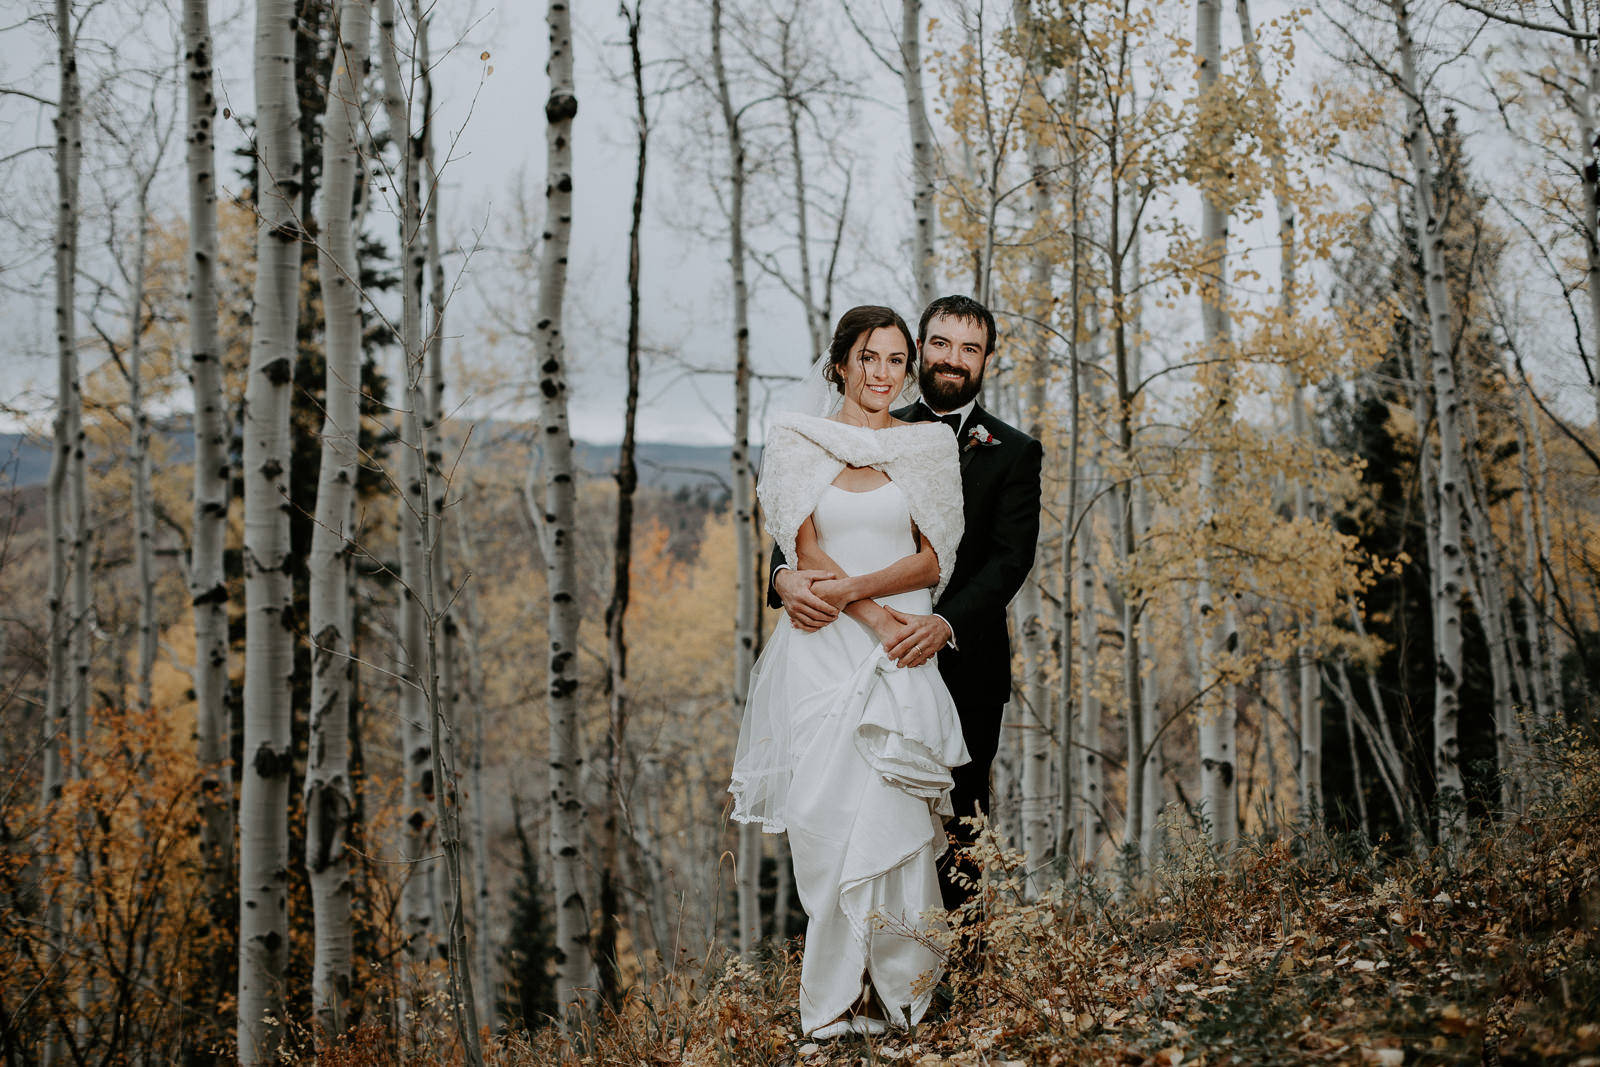 Groom hugging his bride from behind among yellow and white aspen trees